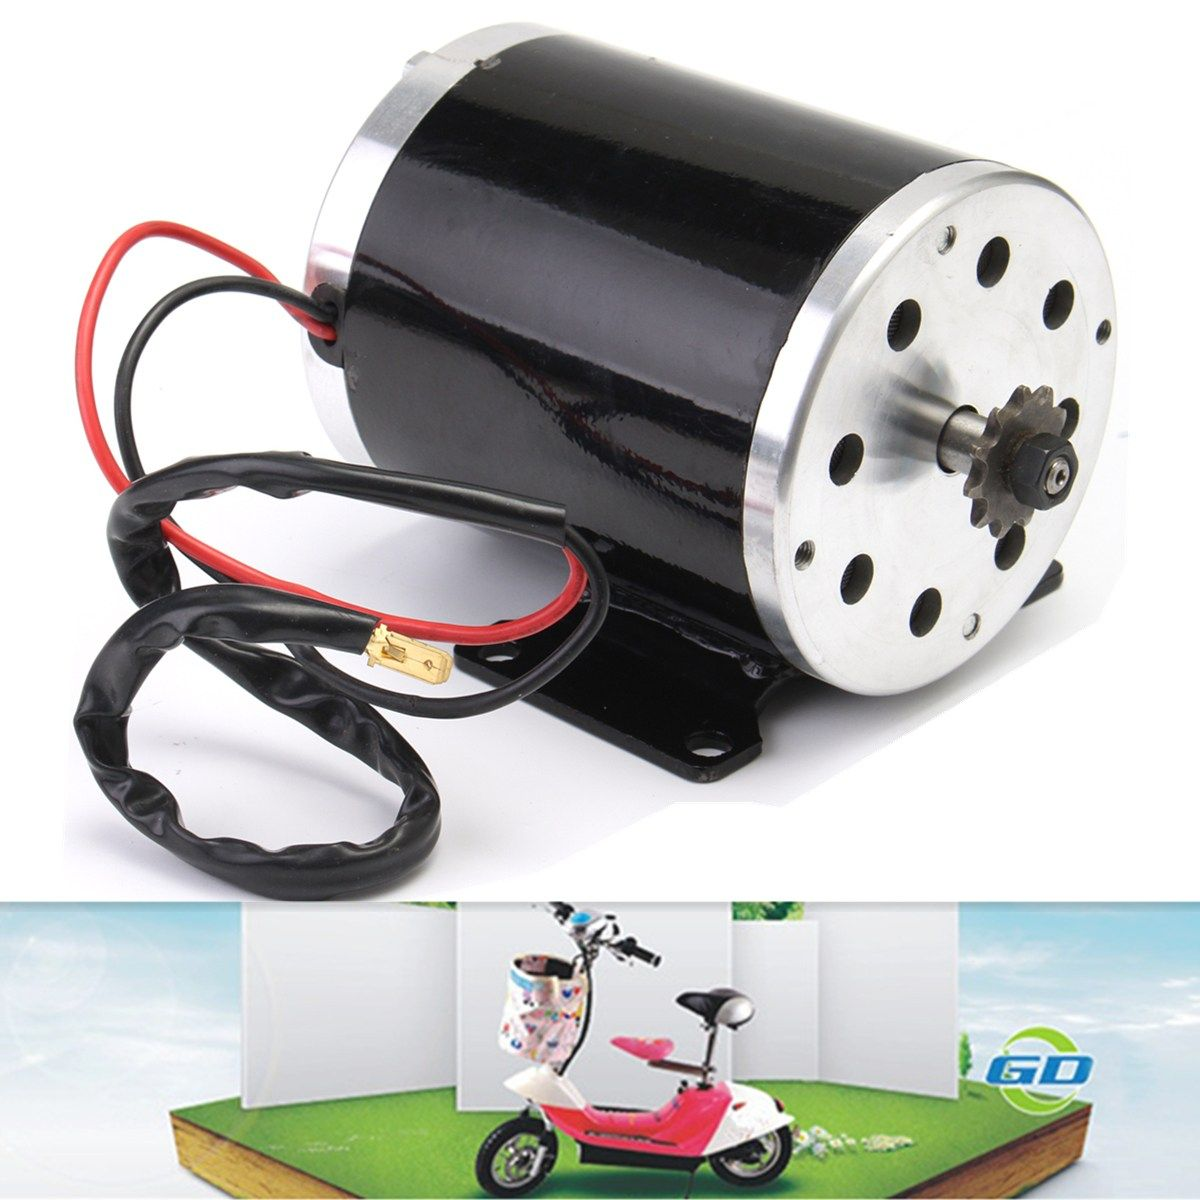 1Pcs 500W 24V DC electric brush ZY1020 Motor with Base for Escooter for Ebike Kart DIY Project